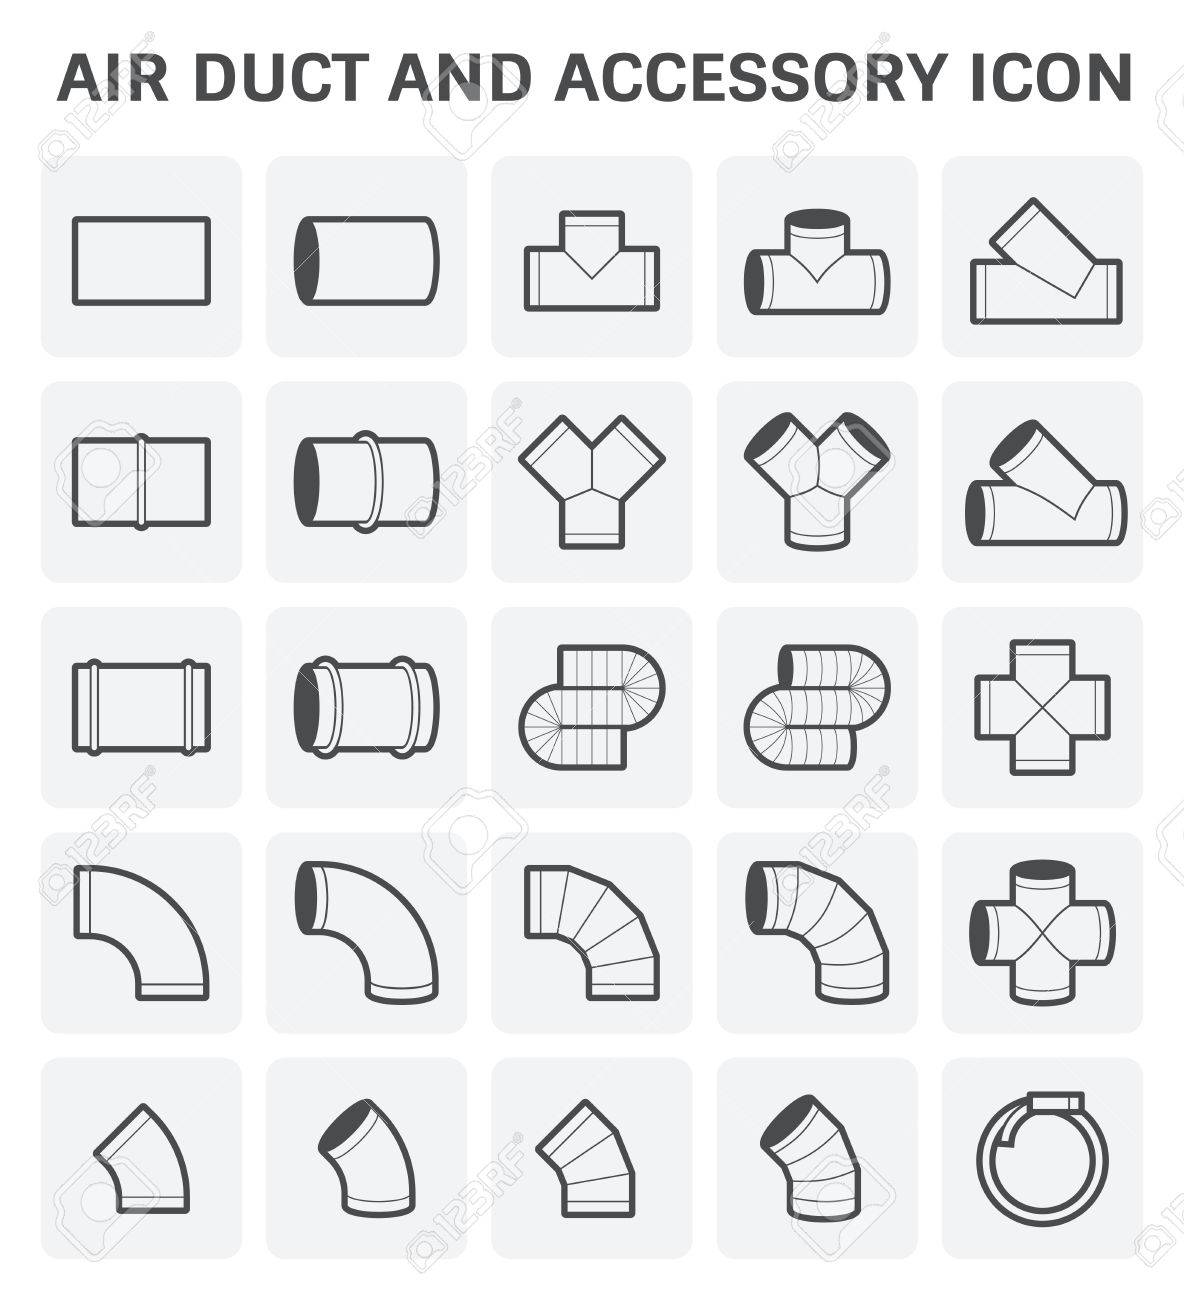 Icon of air duct and accessory for air conditioning or hvac system icon of air duct and accessory for air conditioning or hvac system stock vector buycottarizona Image collections